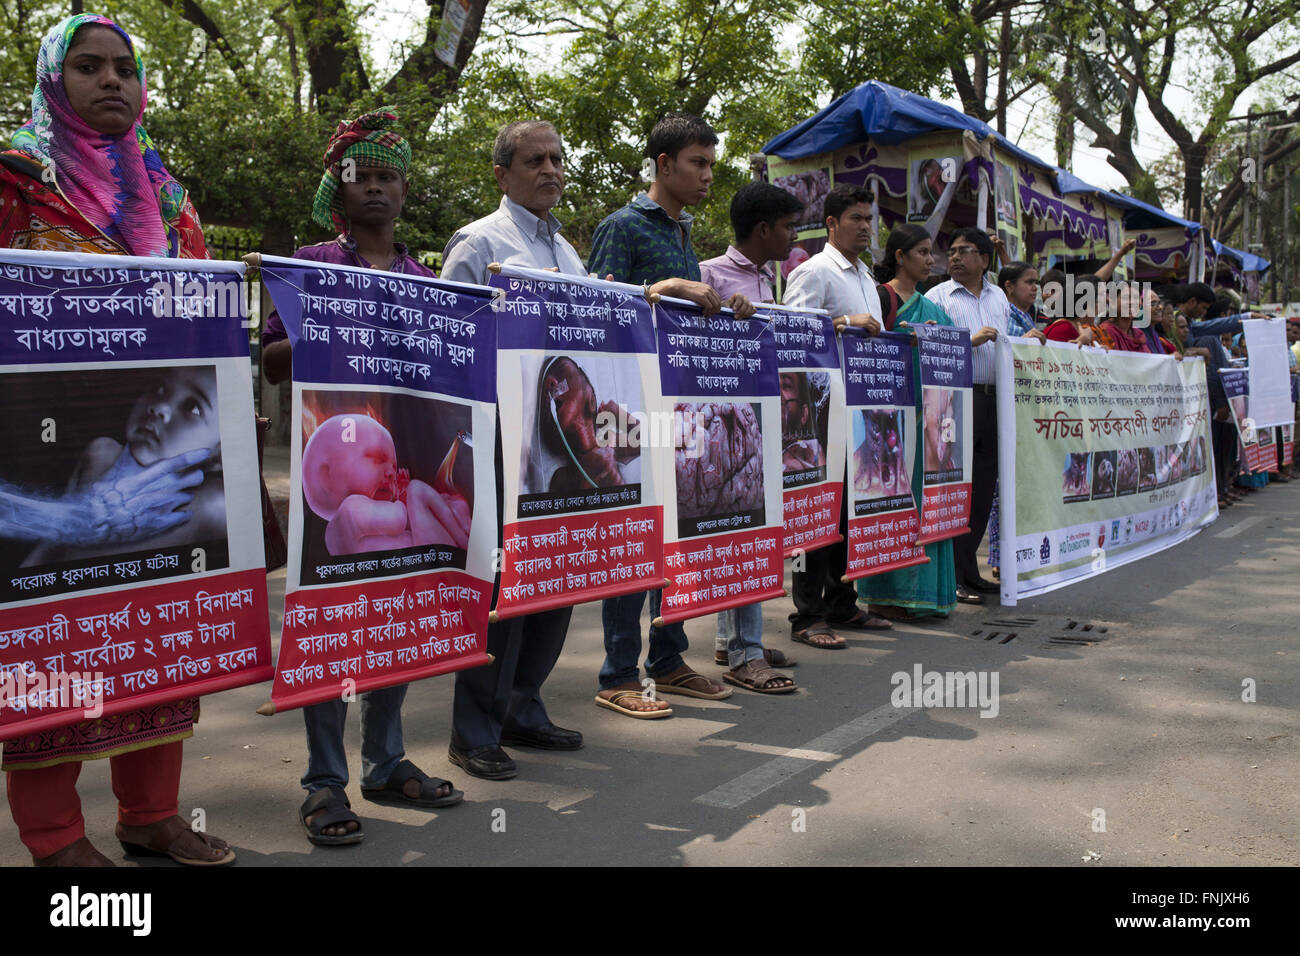 March 16, 2016 - Dhaka, Bangladesh - DHAKA, BANGLADESH - MARCH 16 : Different organization organize road show and - Stock Image